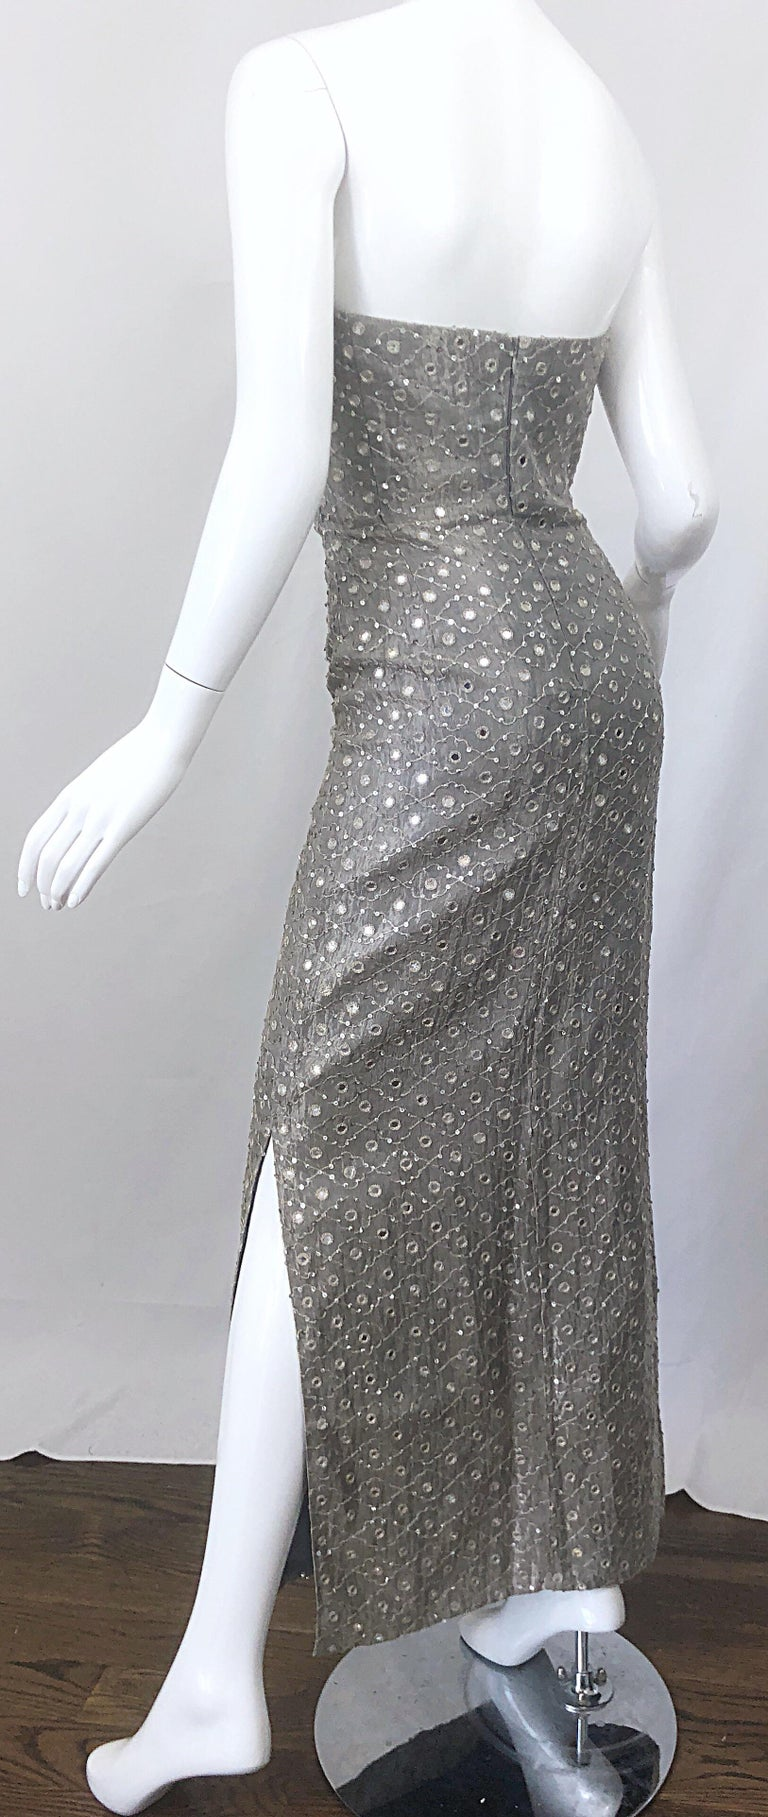 1990s Silver Grey Mirrored Sequins Size 6 Strapless Silk Vintage Gown Dress For Sale 3